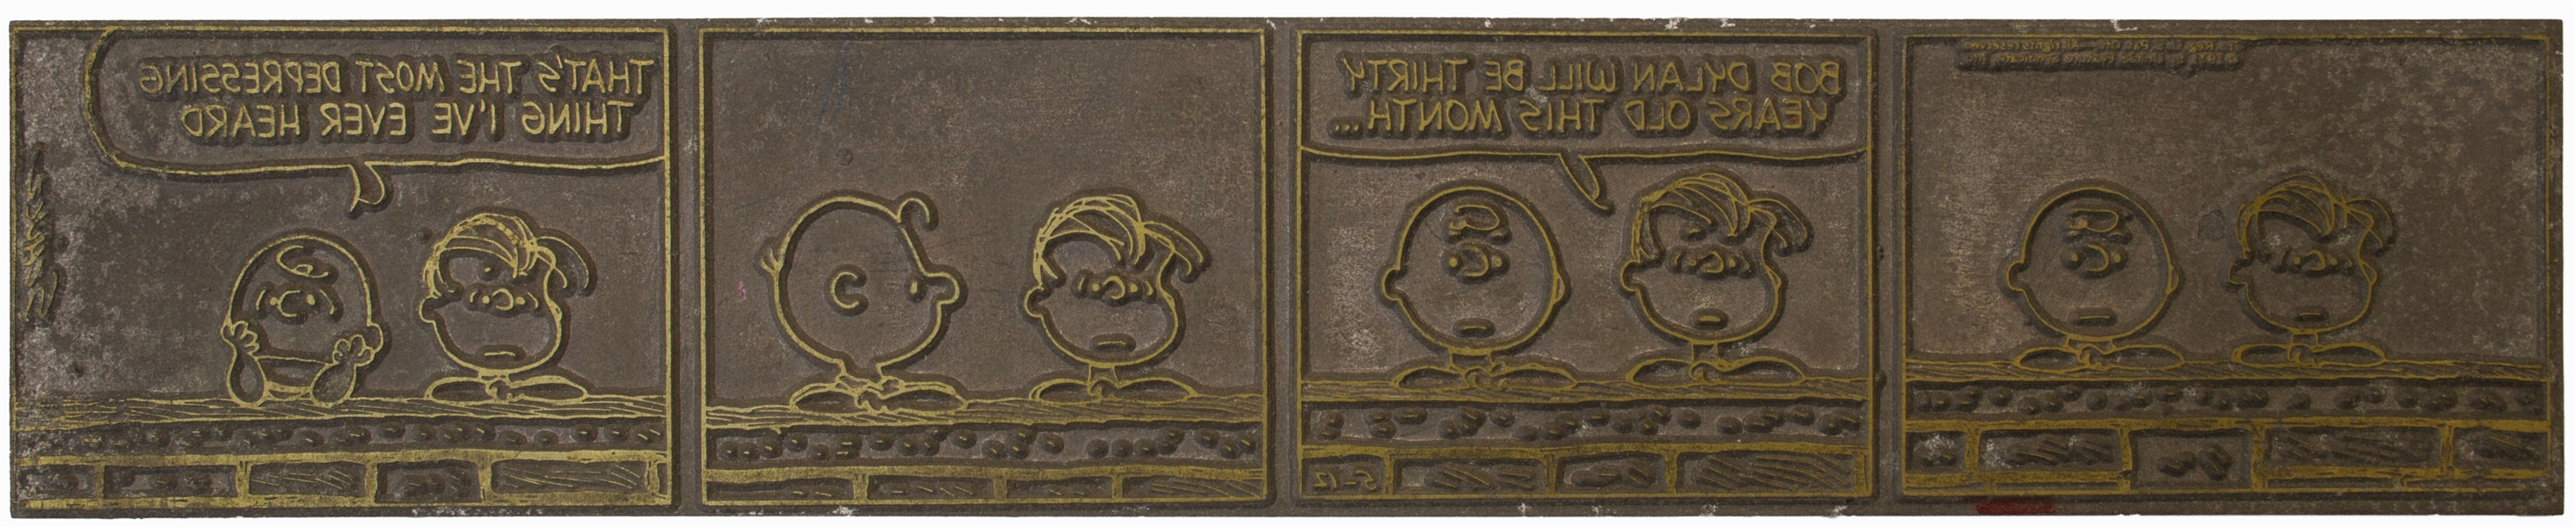 Original Printing Plate for the Famous 1971 ''Peanuts'' Comic Strip Celebrating Bob Dylan's 30th Birthday -- Plus 12 Other Original Comic Printing Plates Including Four More for ''Peanuts''